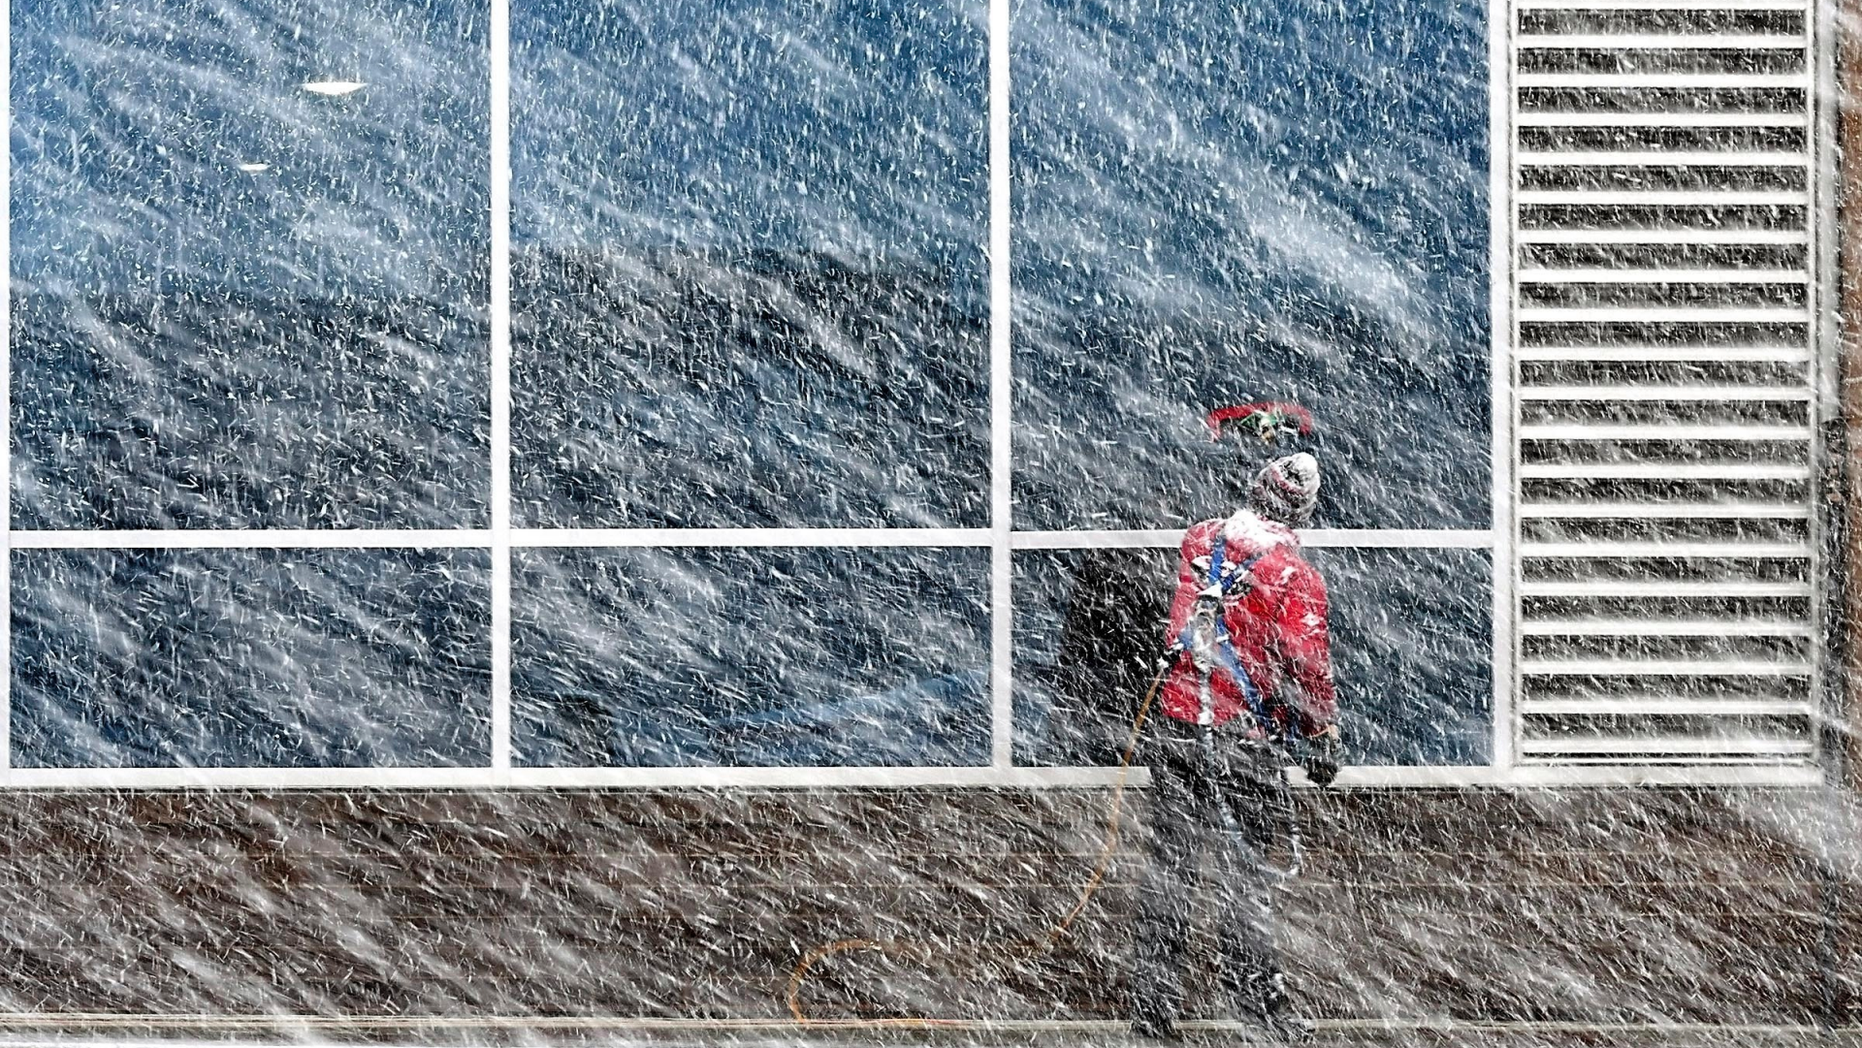 Xavier Castillo of Endres Window Cleaning finishes up a set of windows on the Profinium building in downtown Mankato, Minn., as snow falls Wednesday, Apr. 10, 2019. (Pat Christman/The Free Press via AP)